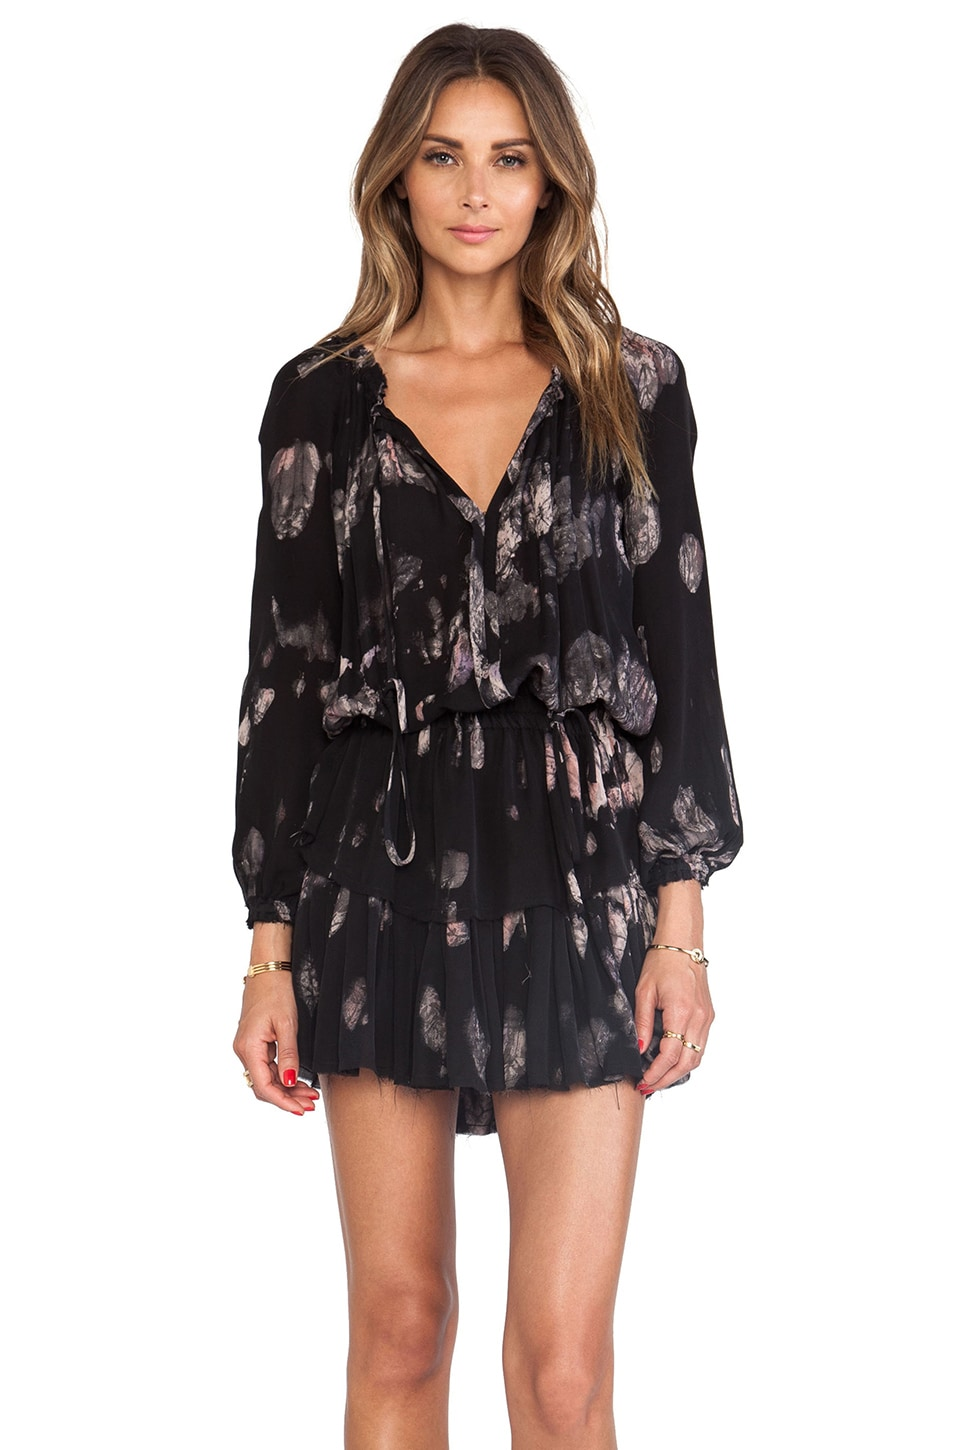 LoveShackFancy Midnight Floral Batik Popover Ruffle Mini Dress in Black & Blush